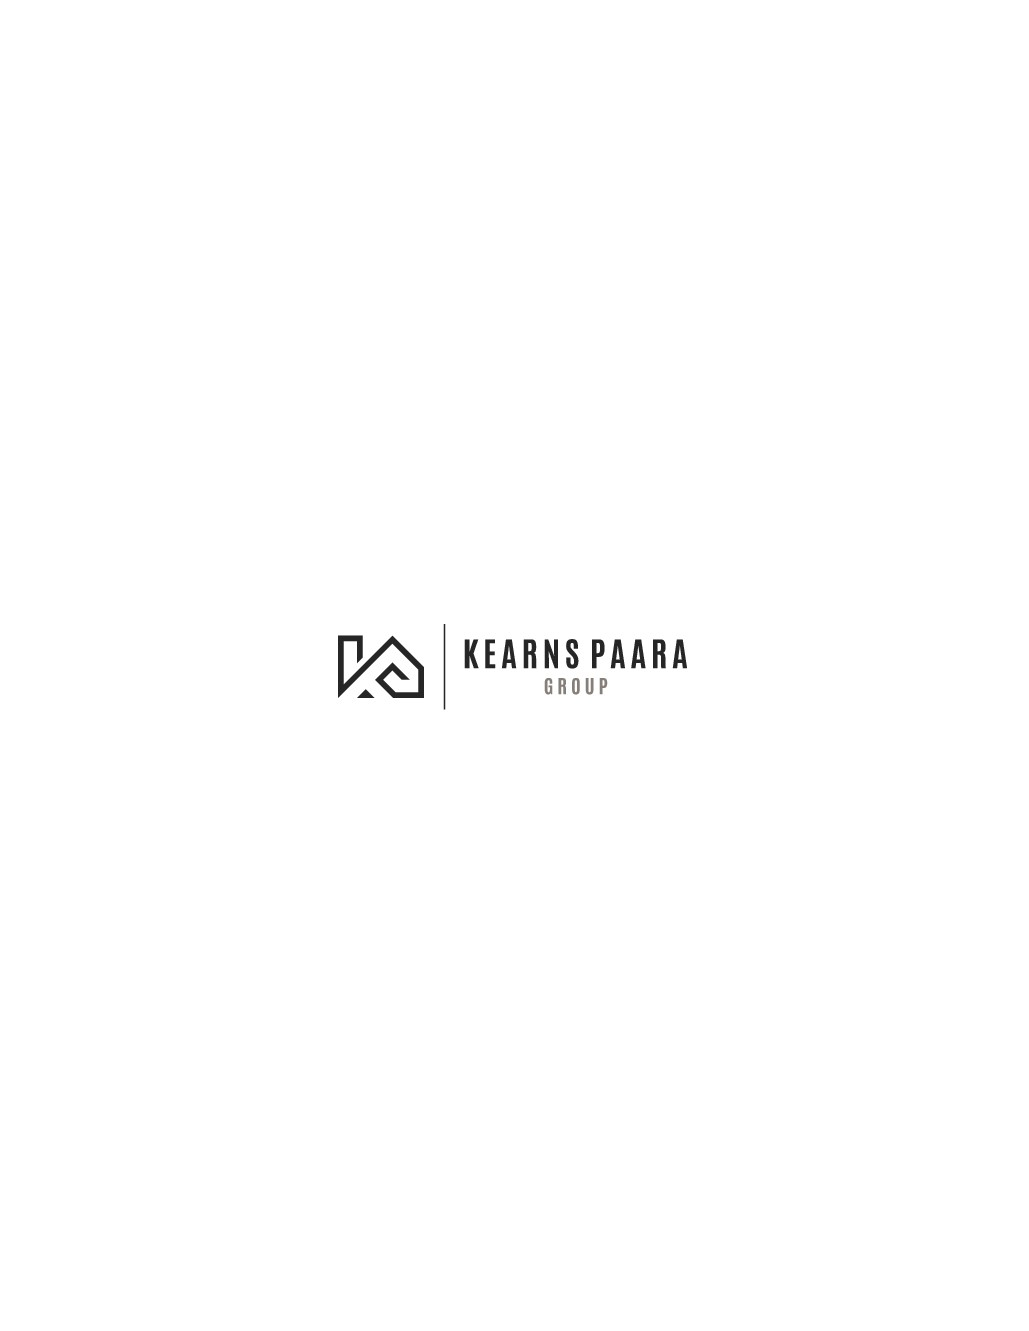 Unique and identifiable logo for a successful residential real estate team